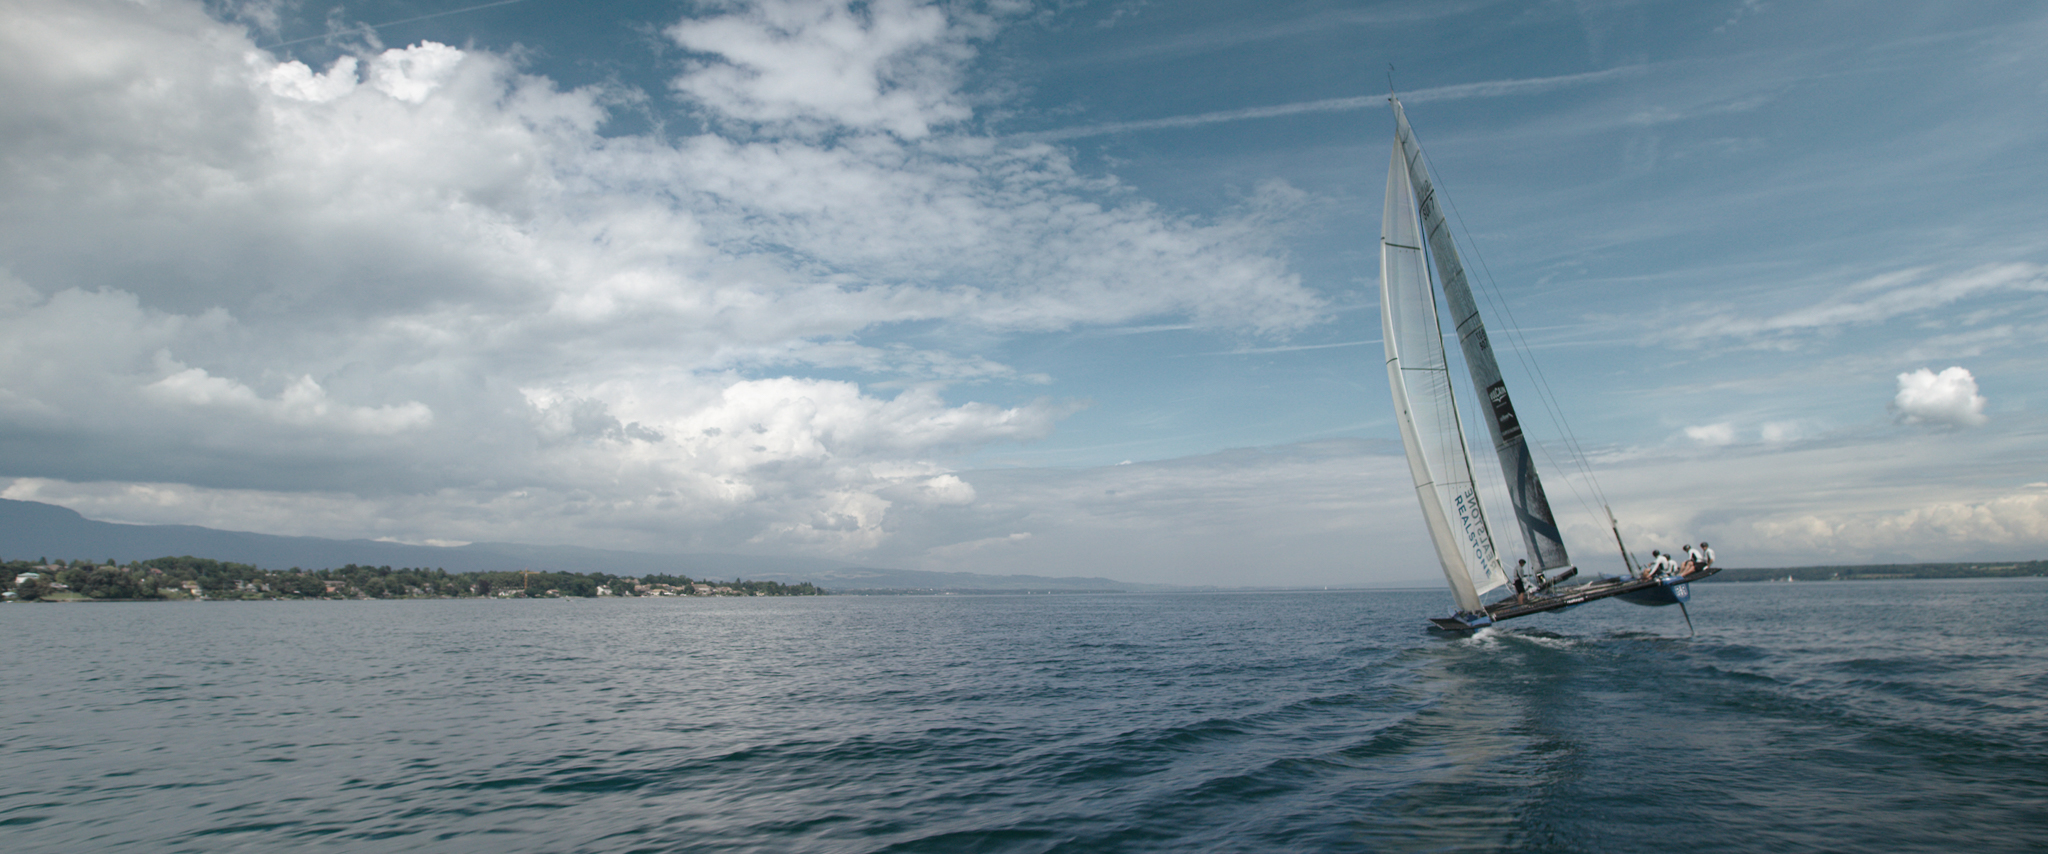 RUAG_Sailing_Web-4